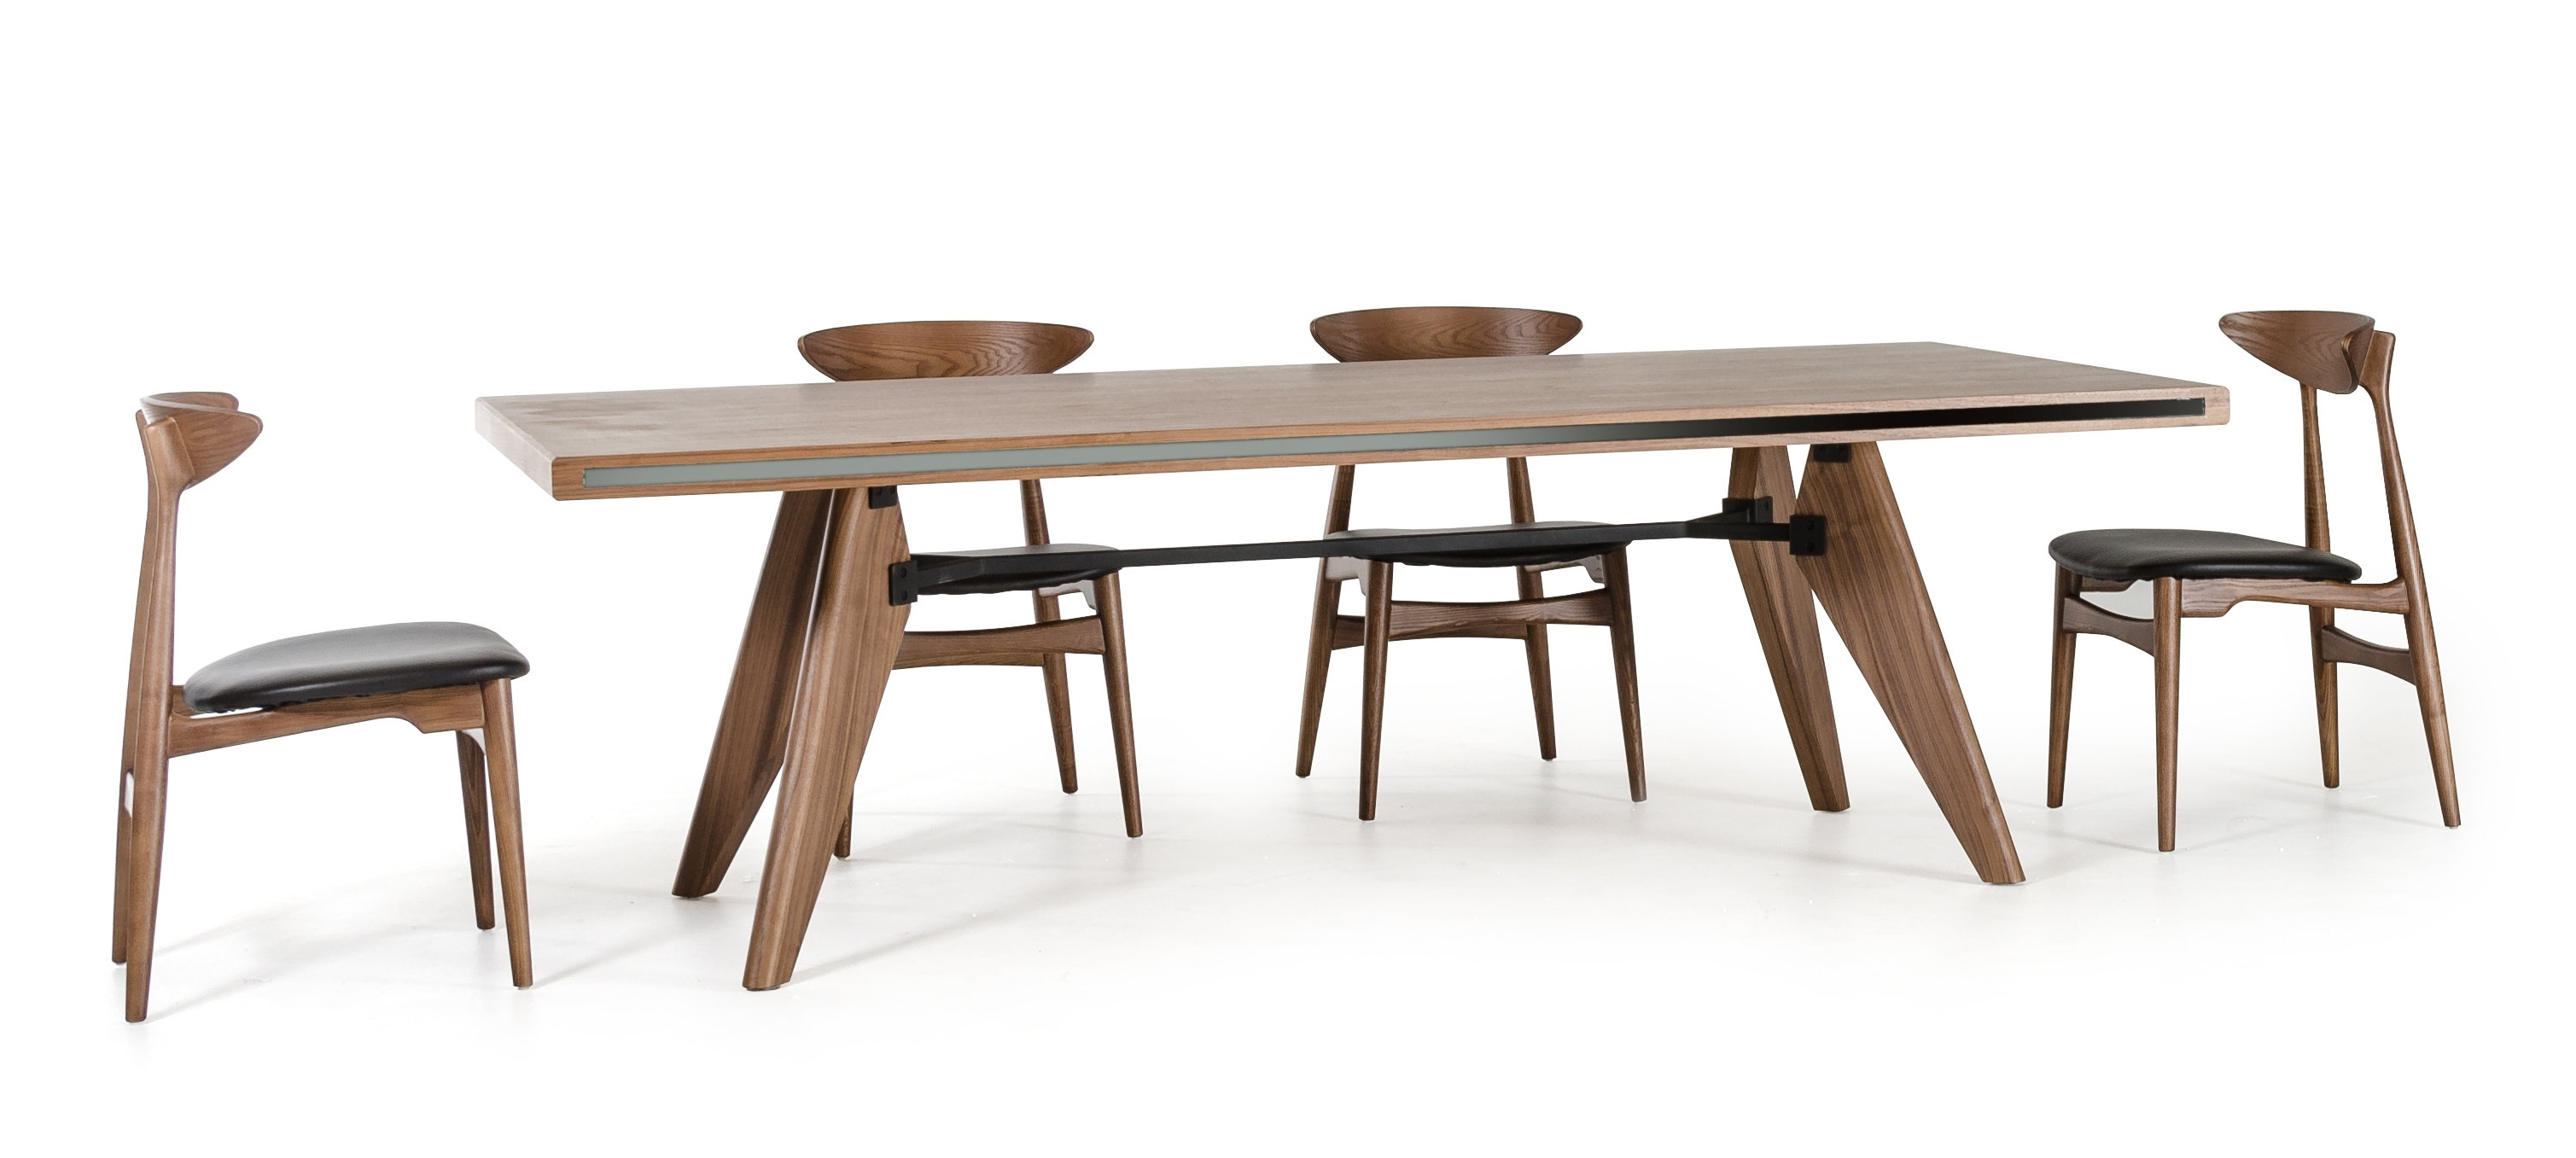 Corrigan Studio Akan Bend Kennedy And Anson 5 Piece Dining Set With Regard To Trendy Anson Cocktail Tables (View 1 of 20)